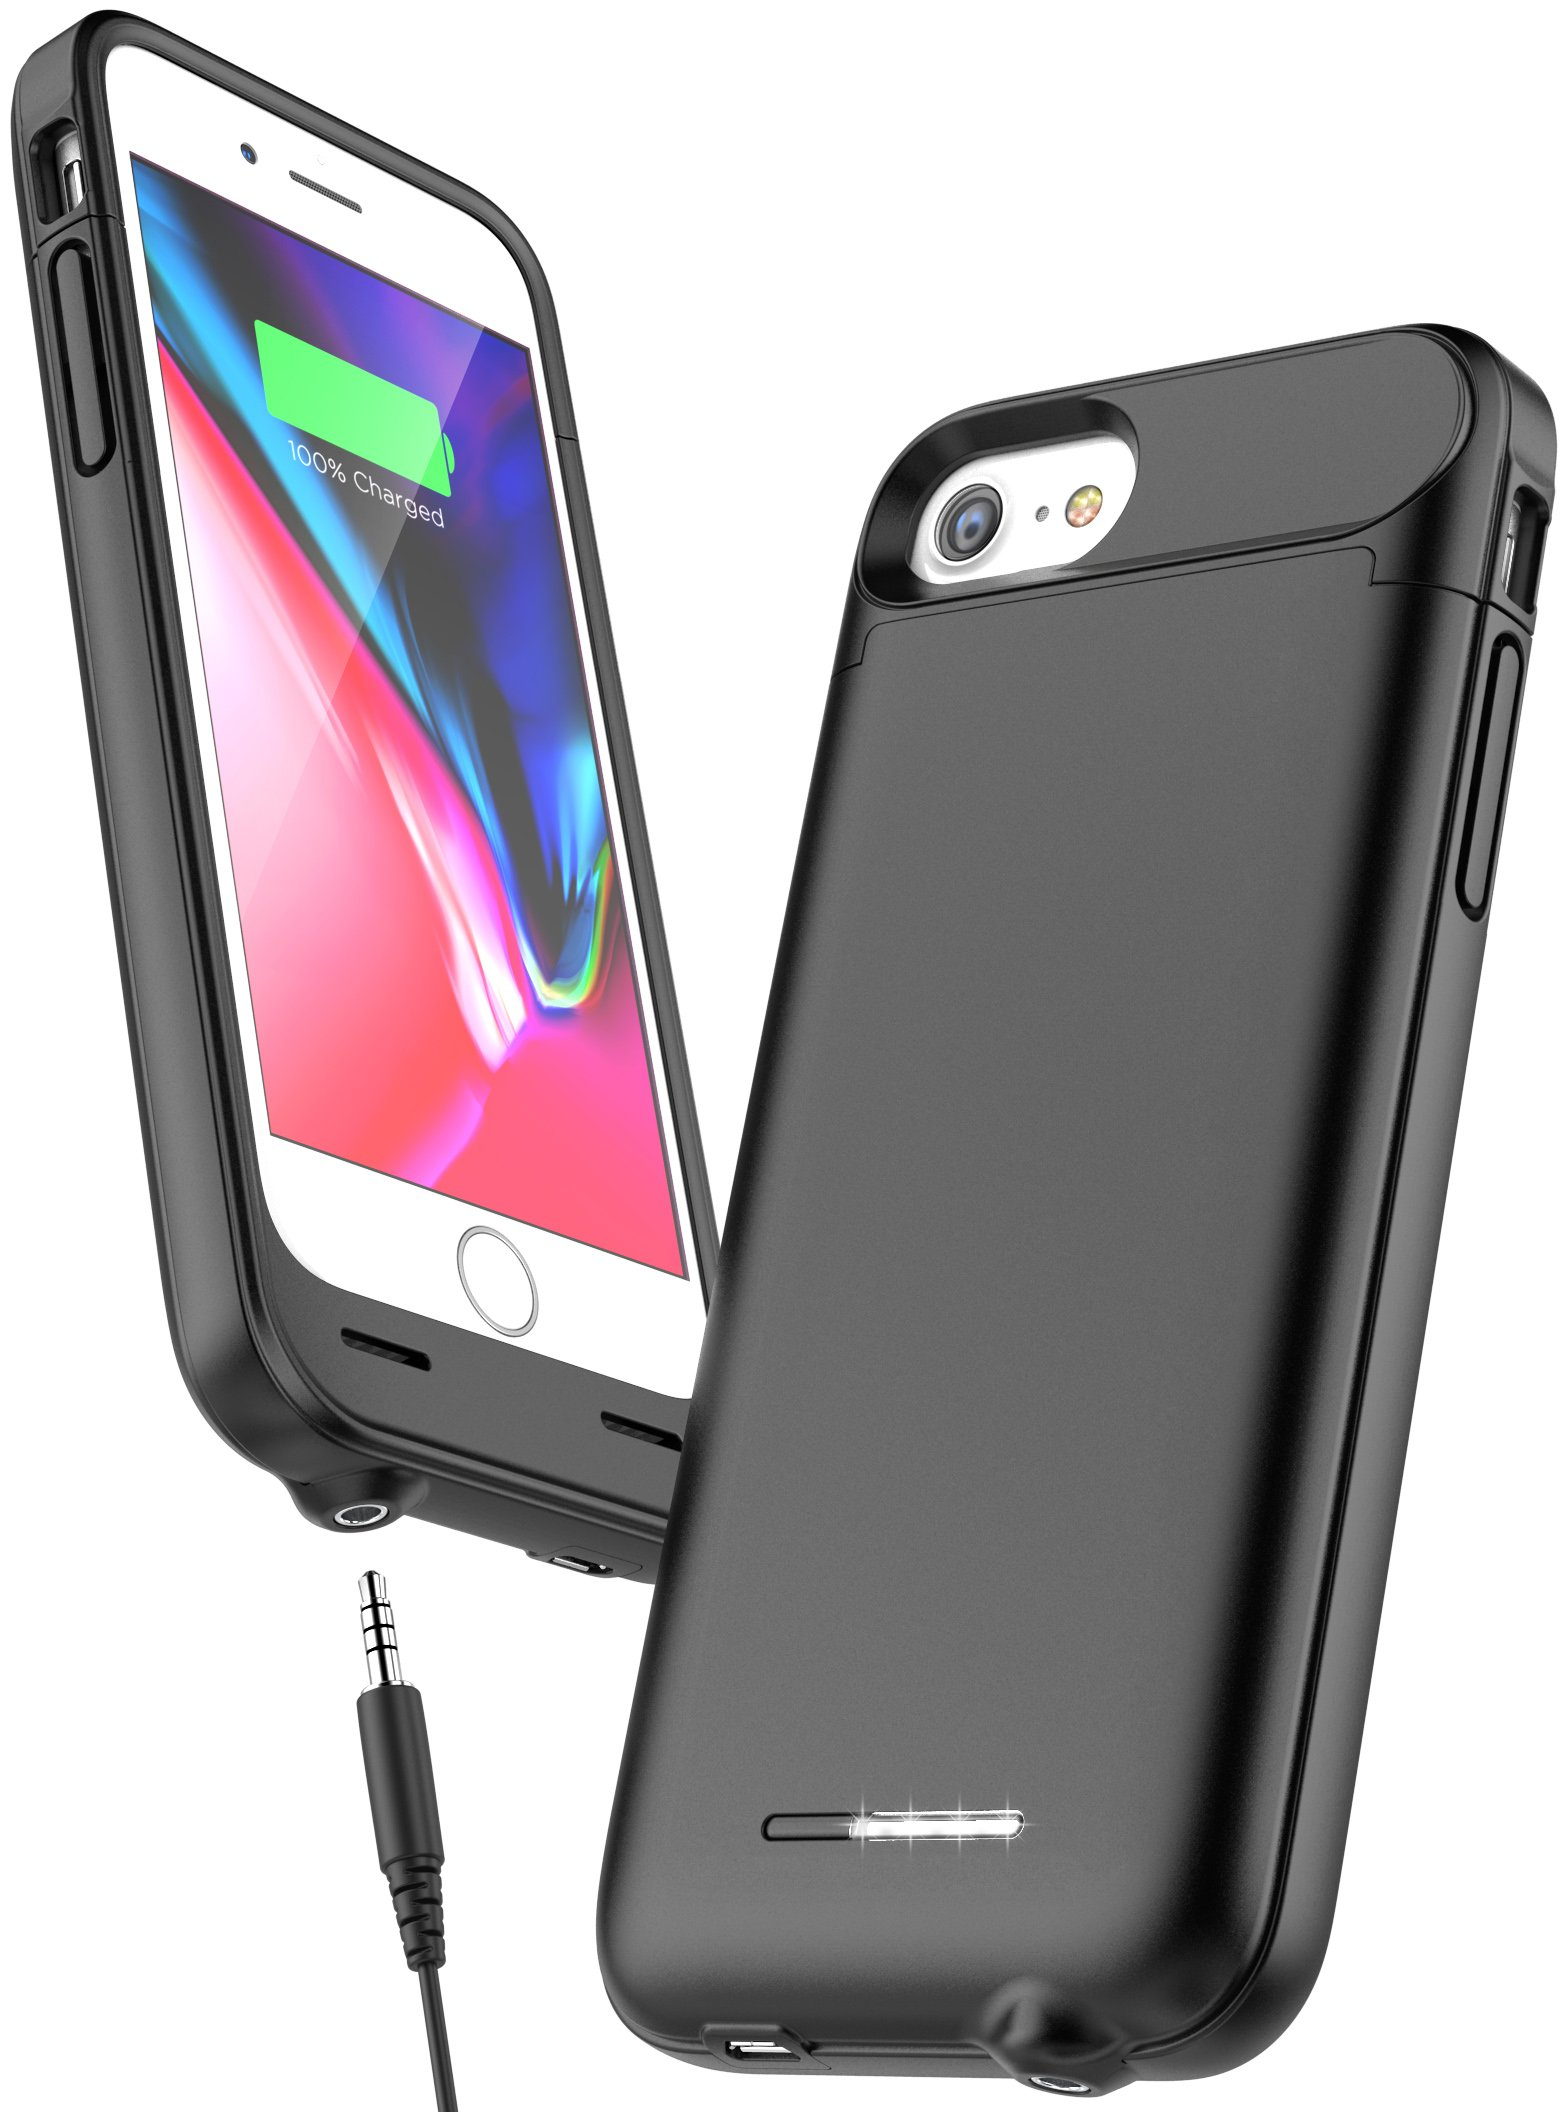 Encased iPhone 8 Battery Case with 3.5mm Headphone Jack - AudioMod (Smart Power Reserve) Slim Charging Case (3000mAh High Capacity)